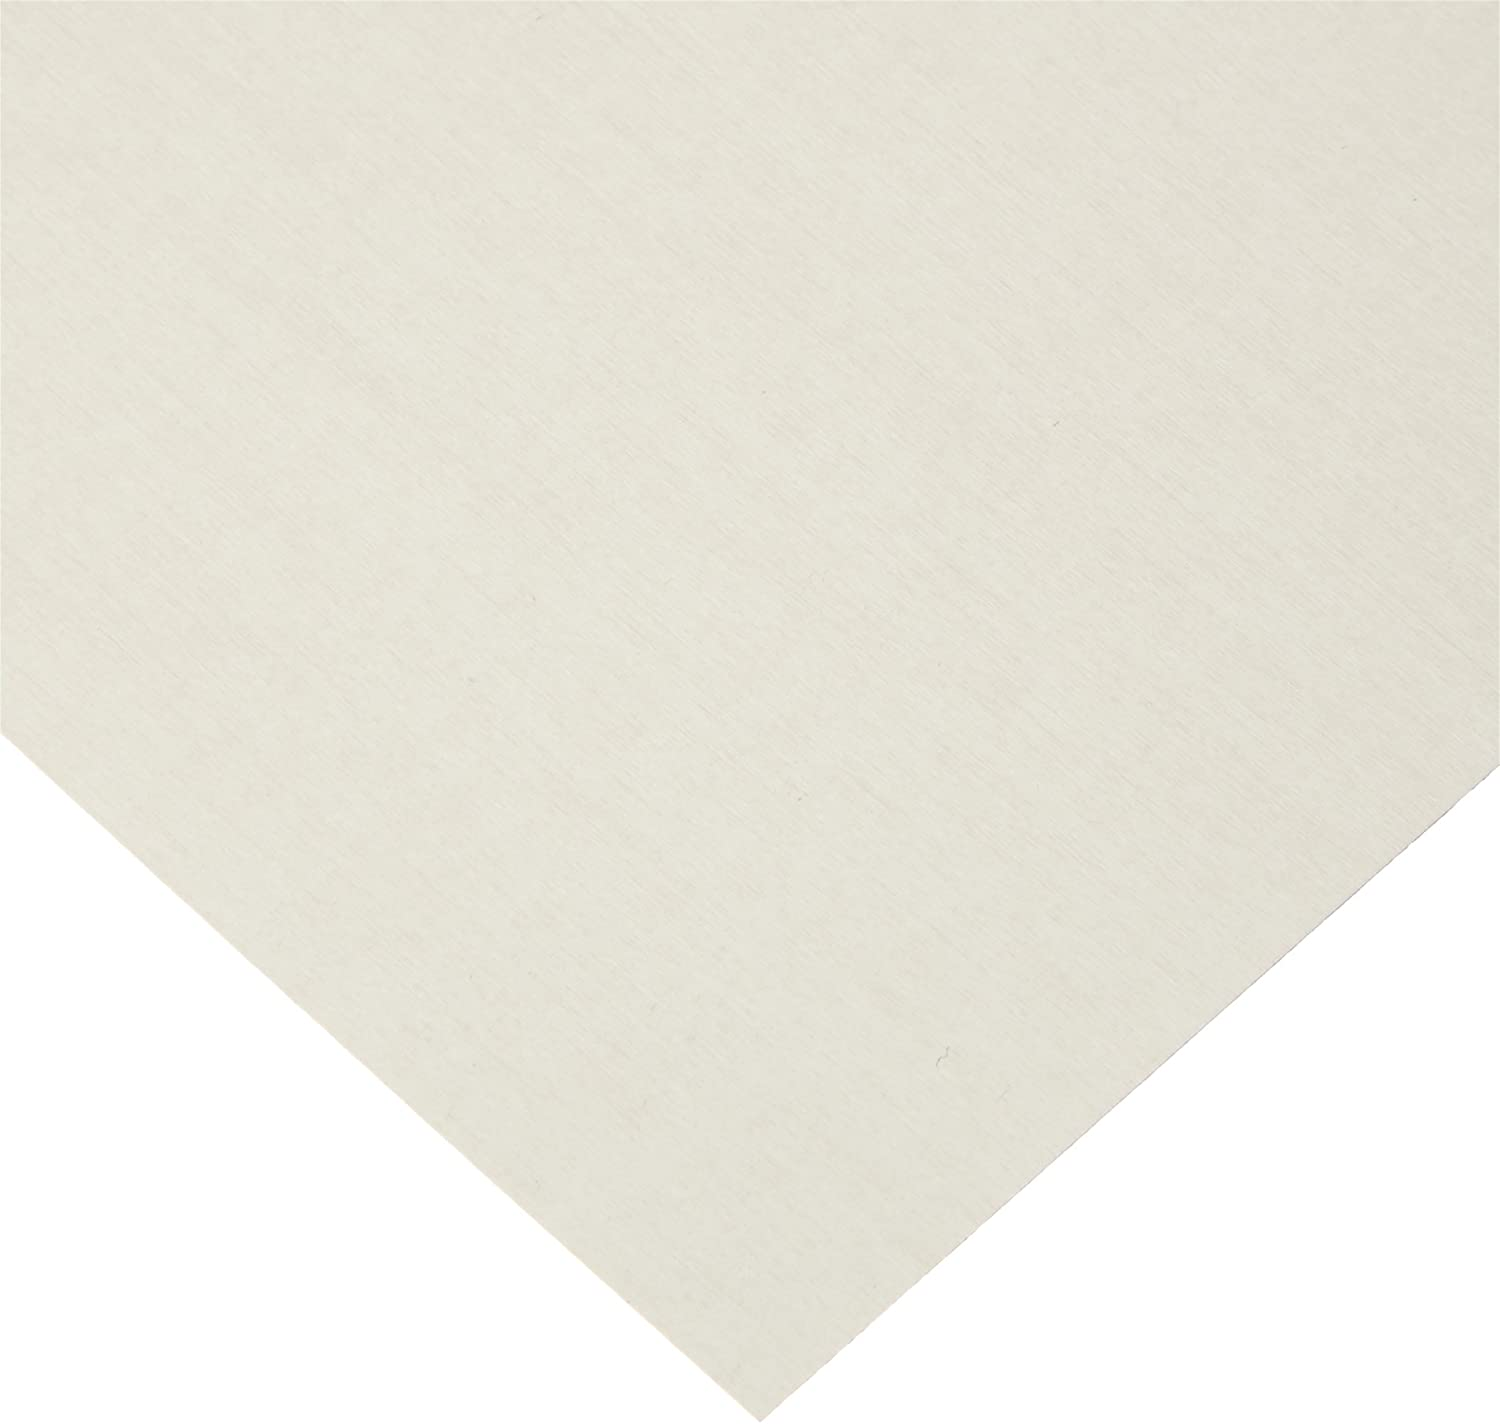 AMERIMAX HOME PRODUCTS 66012 12-Inch x 50-Feet Aluminum Flashing